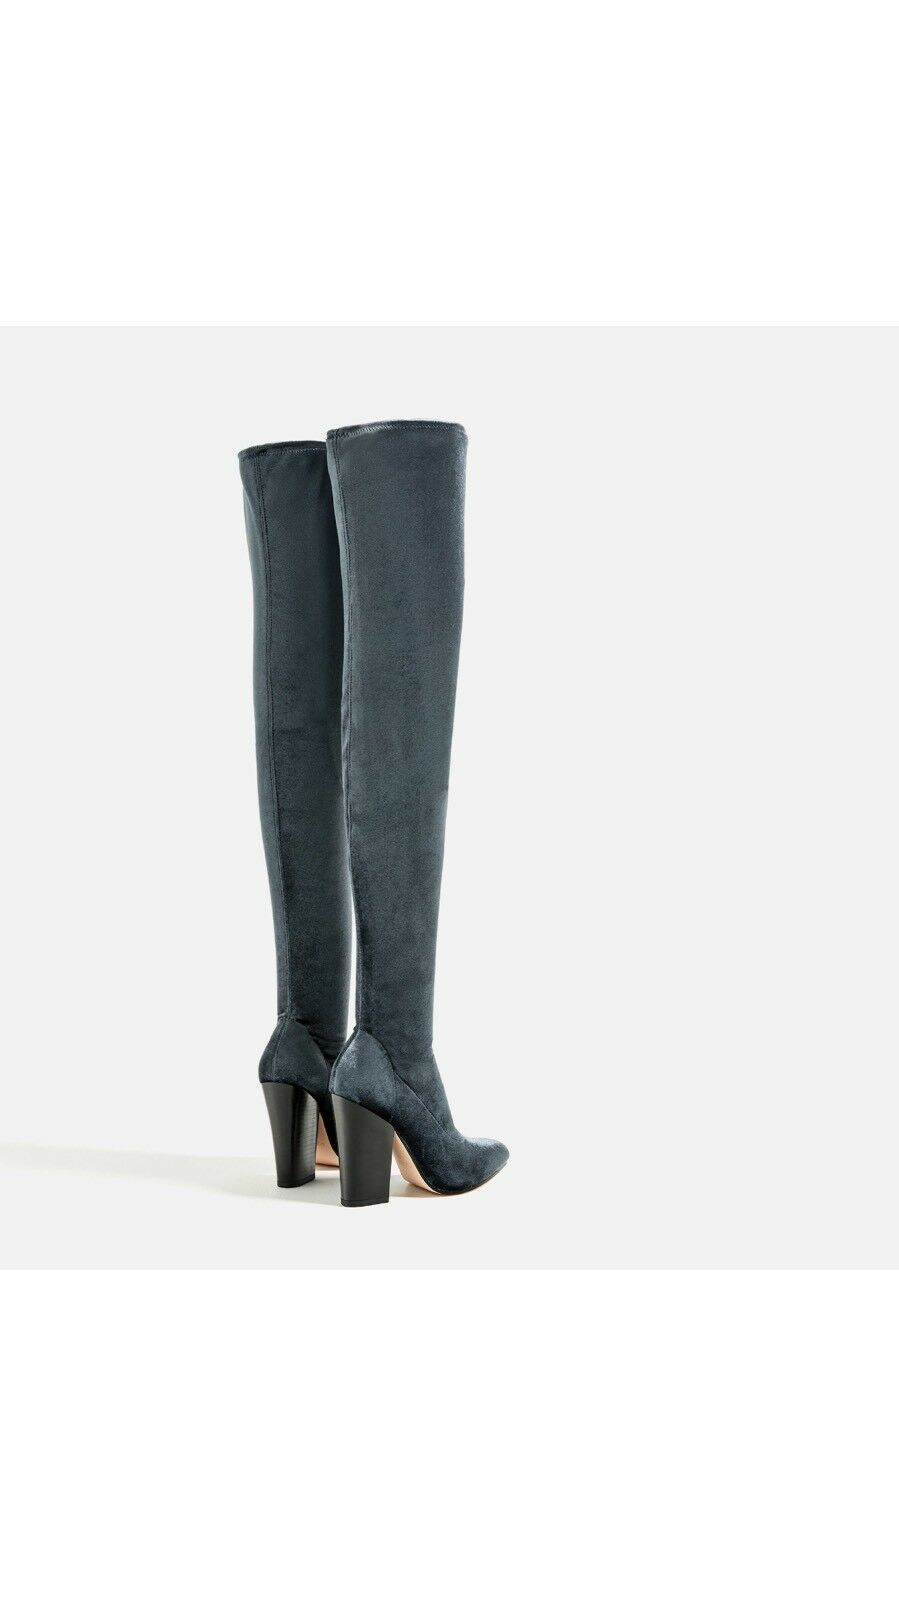 NWT ZARA ZARA ZARA VELVET OVER THE KNEE HIGH HEEL bottes bleu Sz US6 EU36 UK3 REF. 6010 101 a6fa96